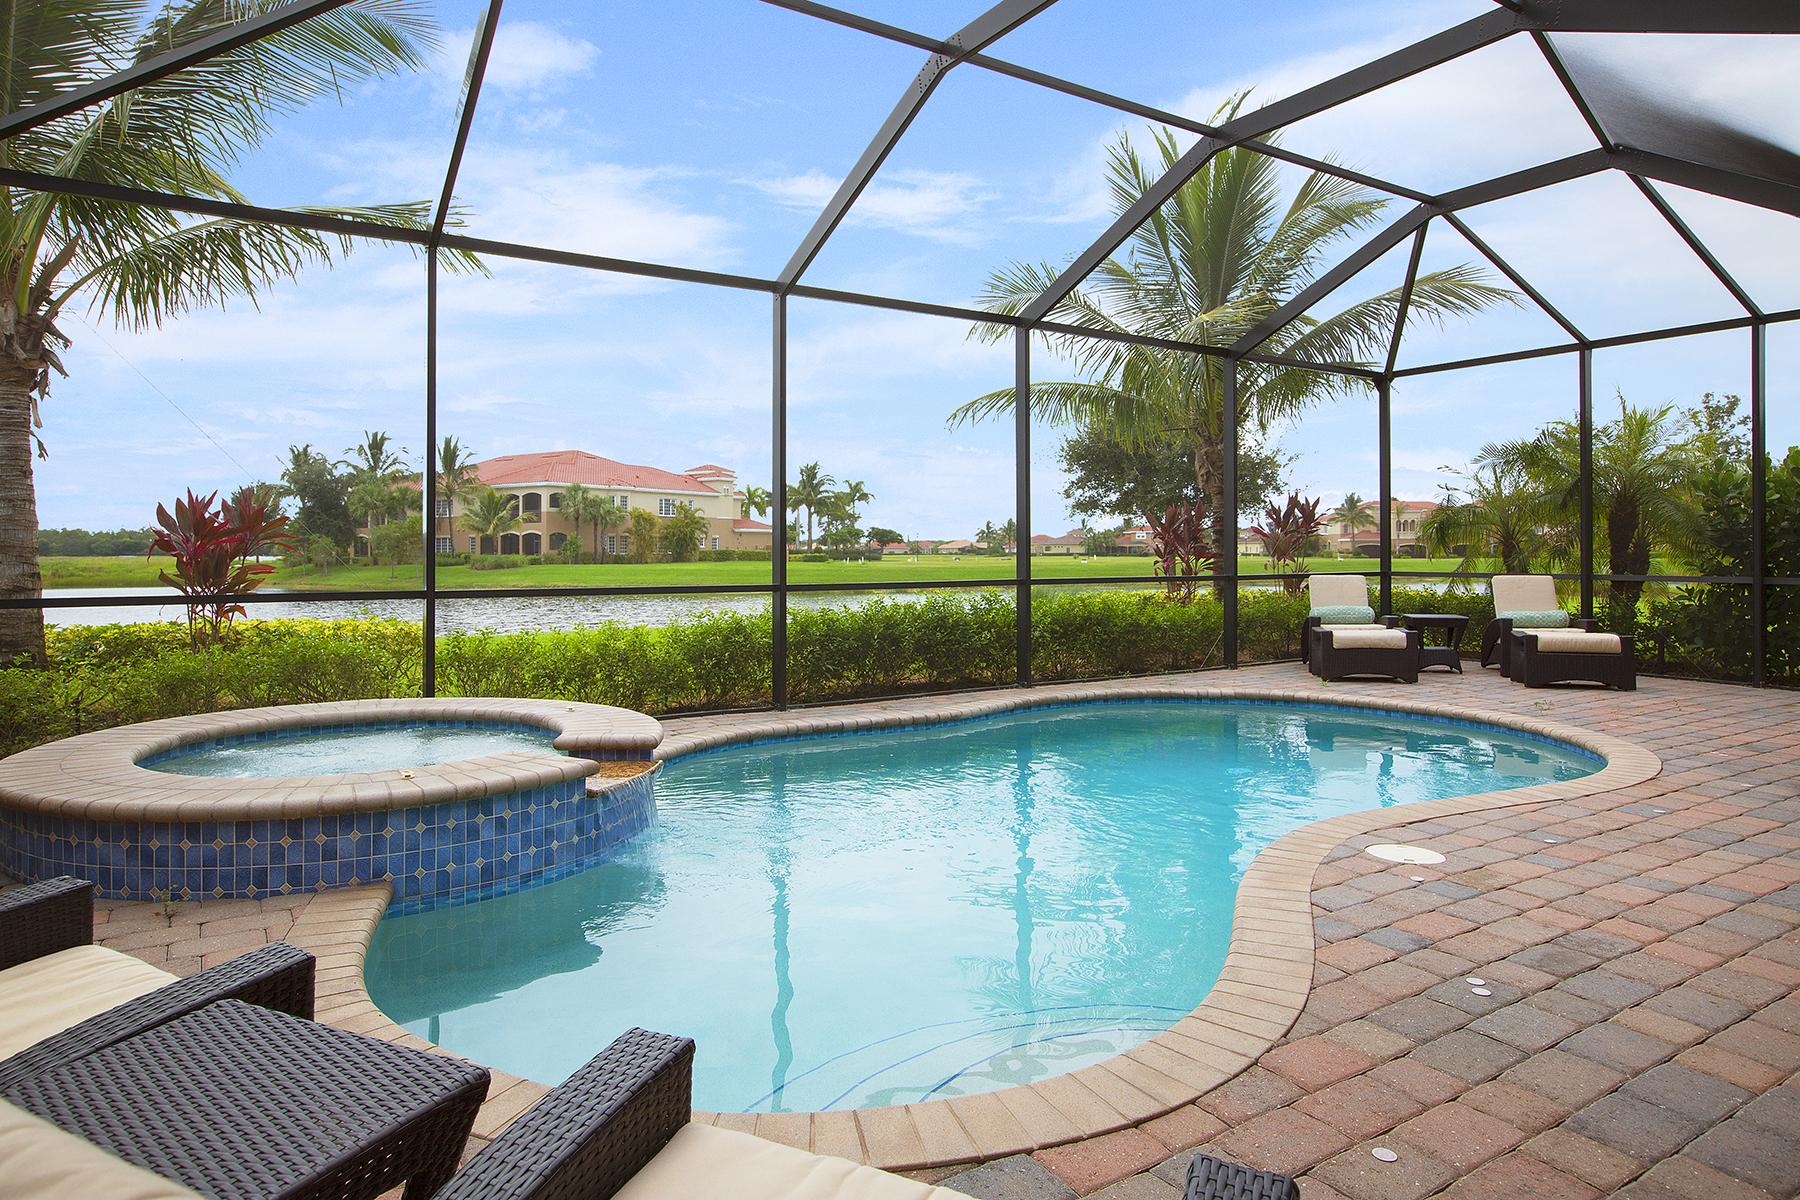 Single Family Home for Sale at FIDDLER'S CREEK - AMADOR 9189 Campanile Cir Naples, Florida, 34114 United States